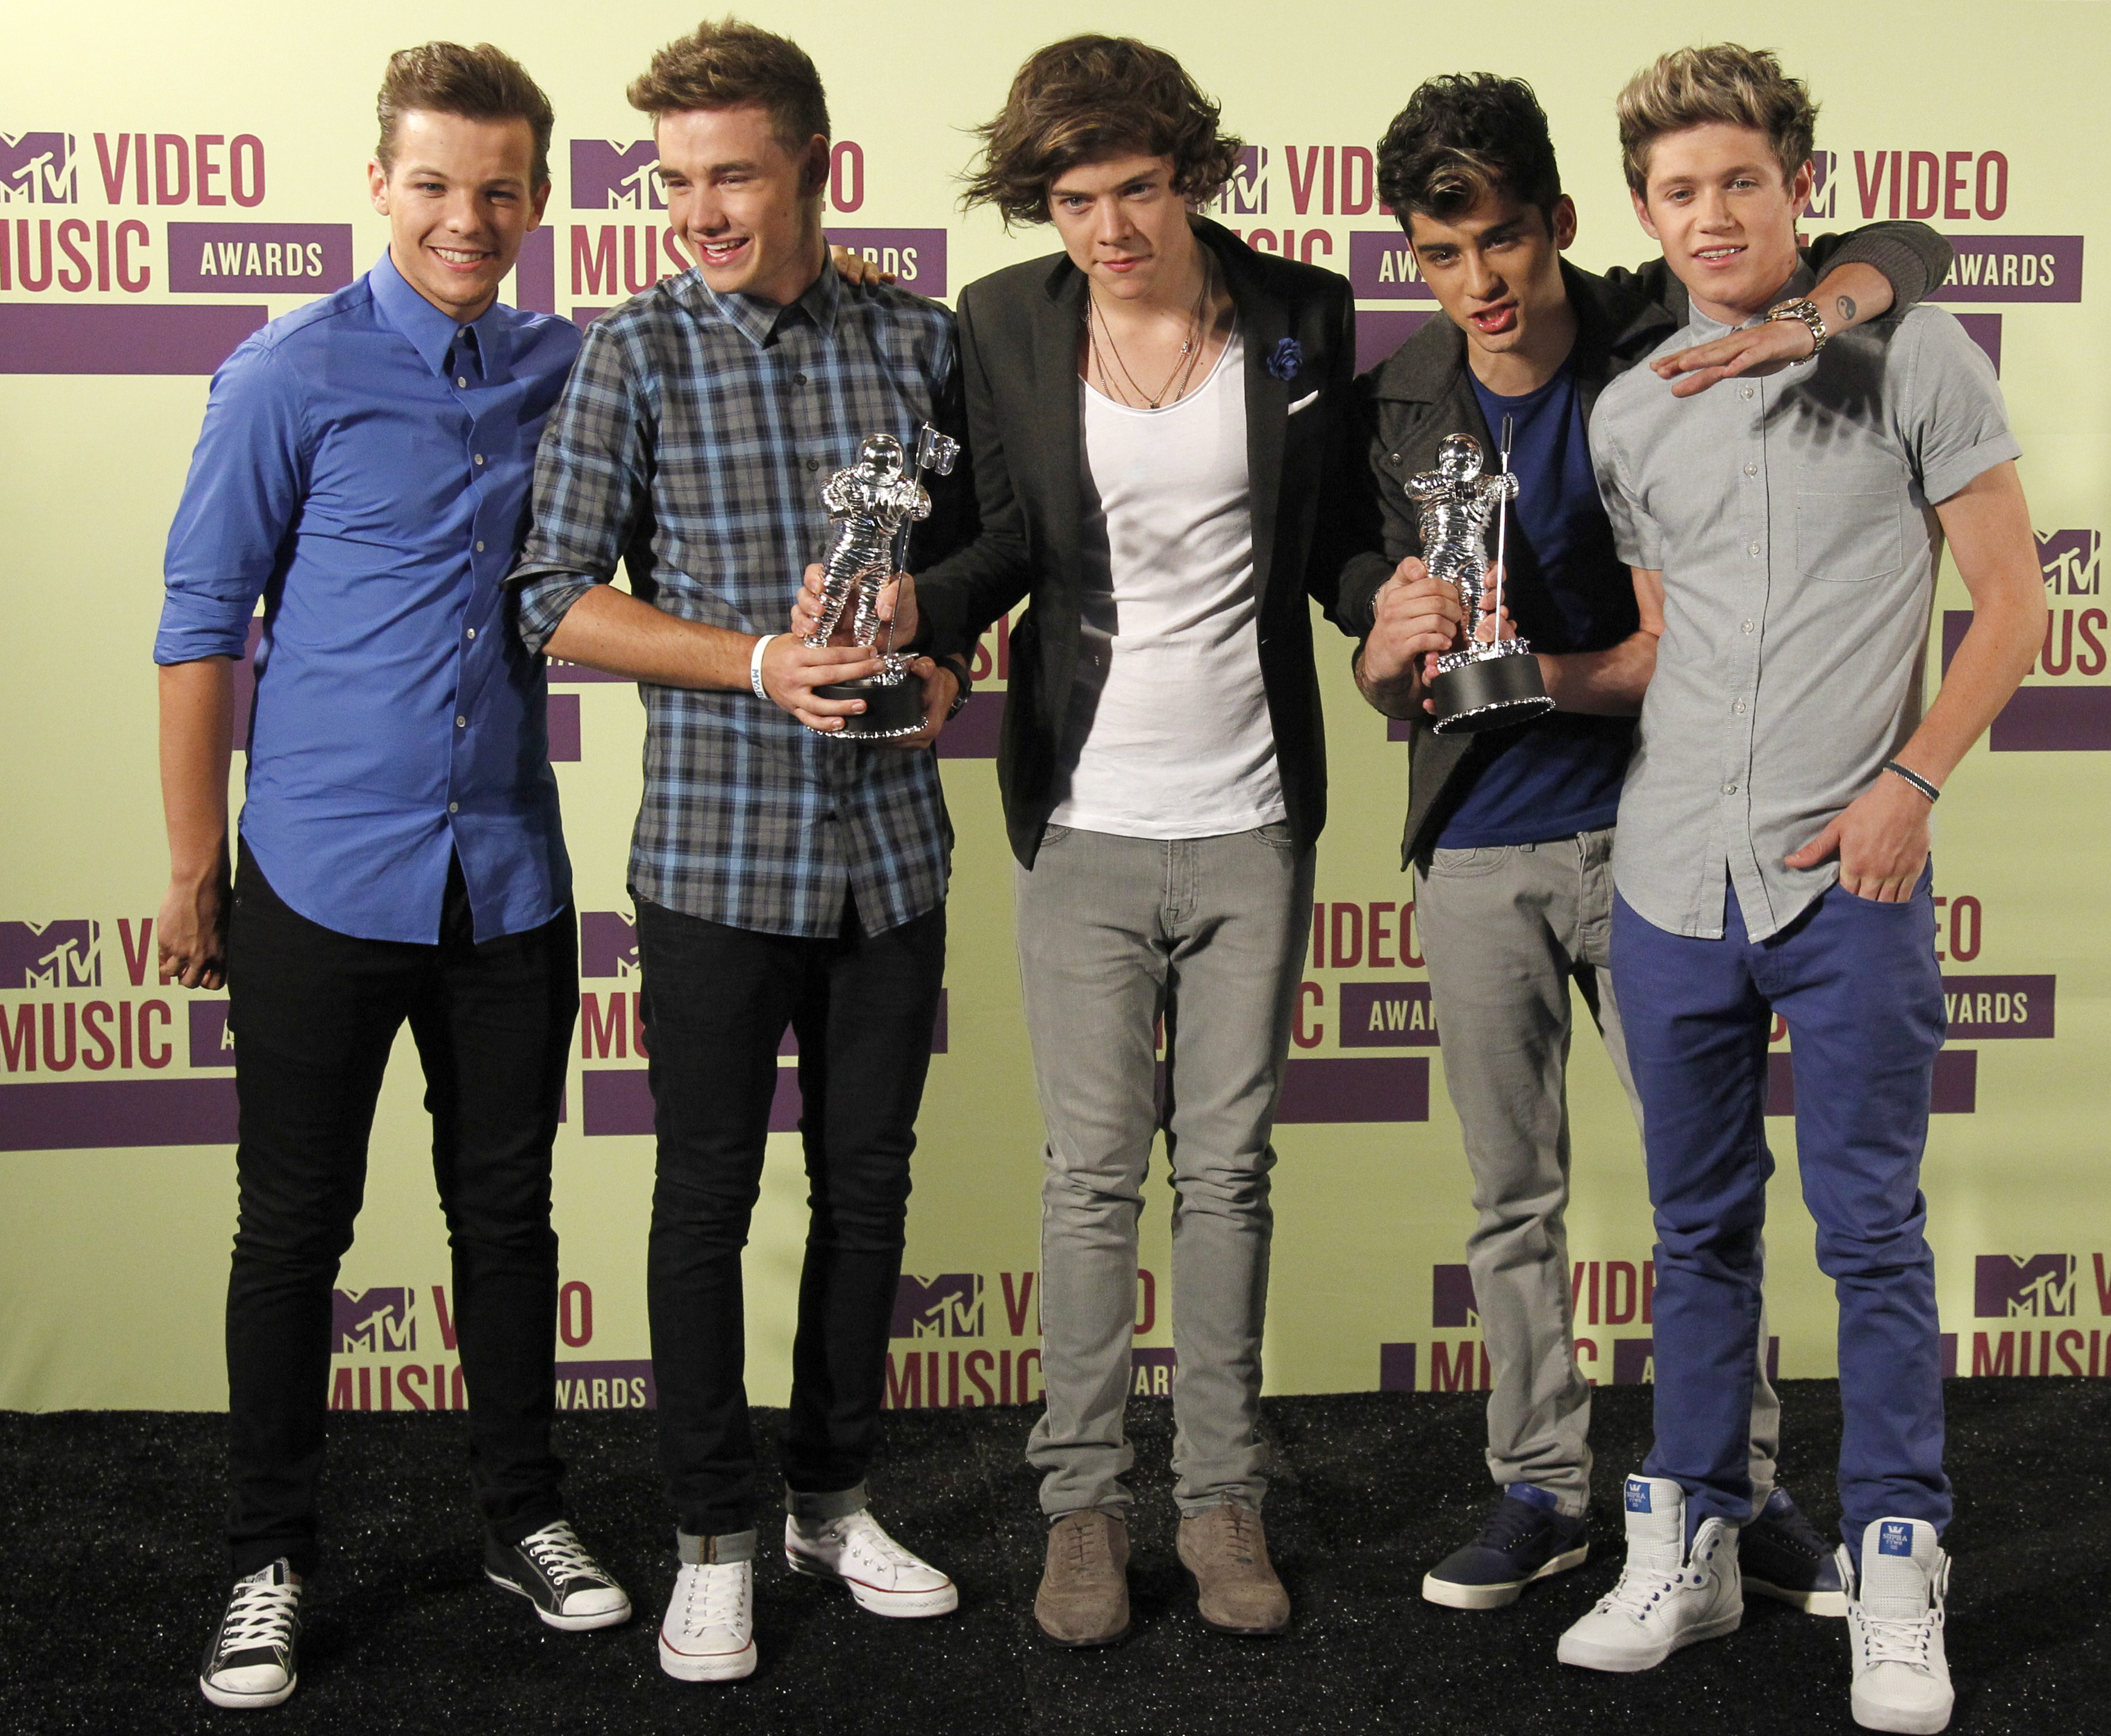 Photos of One Direction Band 'one Direction' News Pop